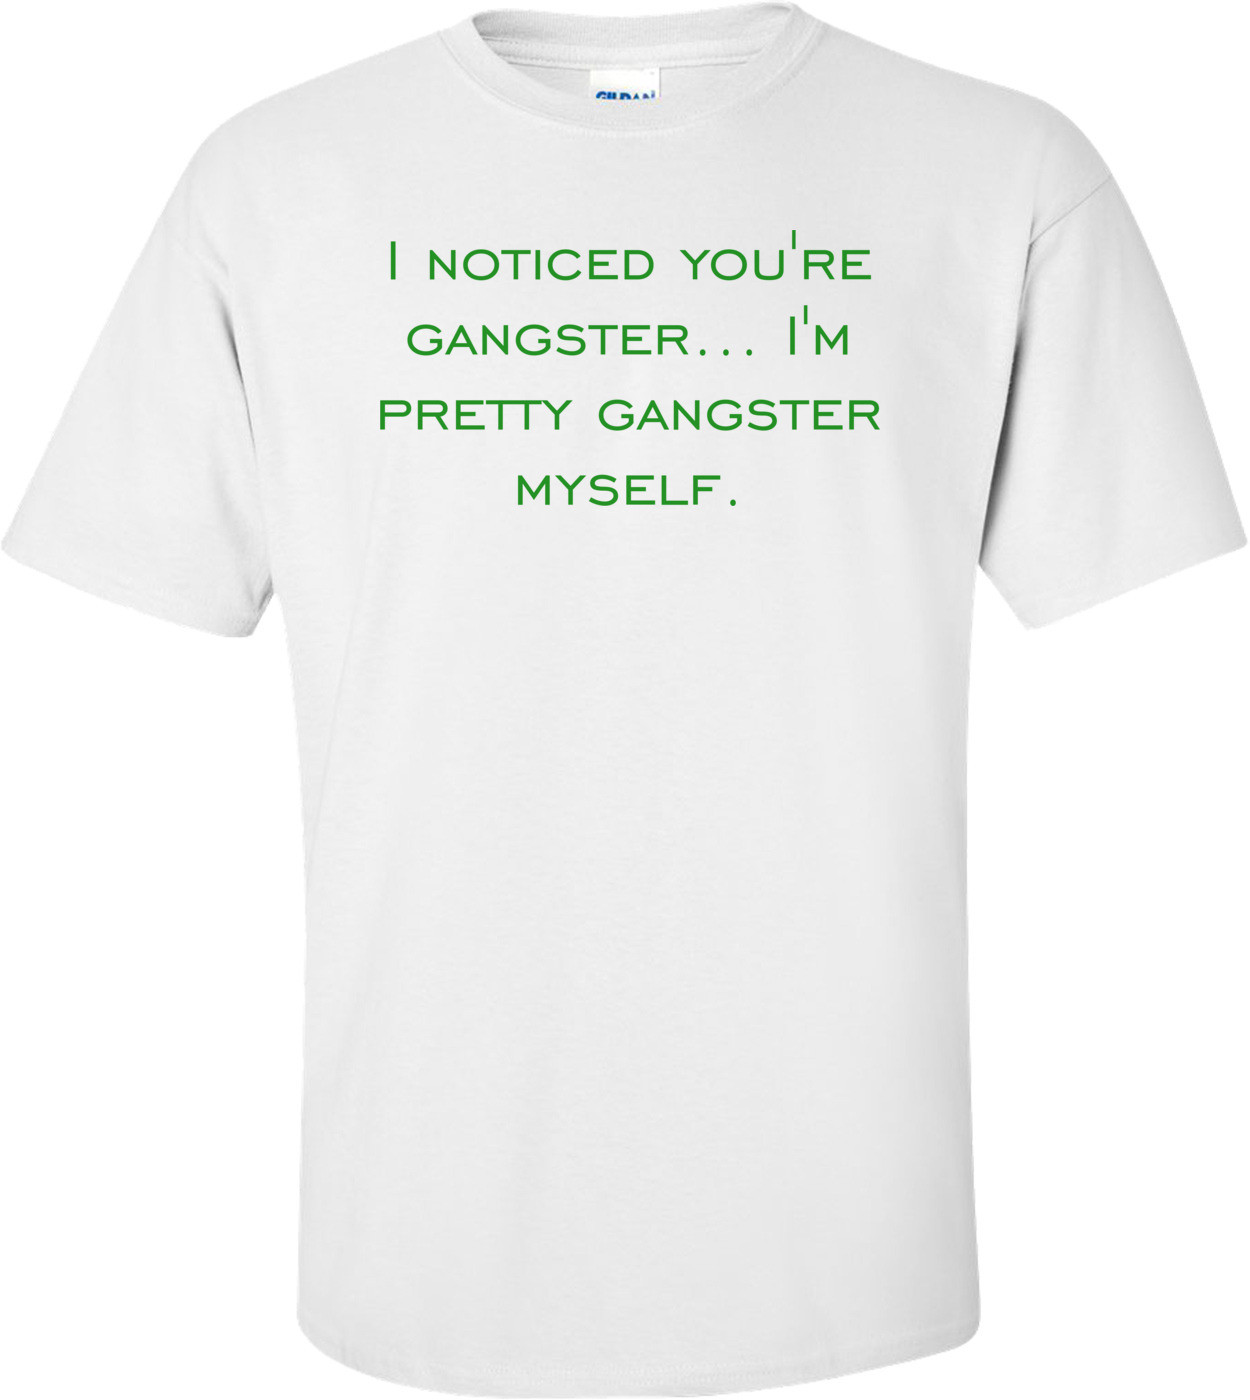 I noticed you're gangster... I'm pretty gangster myself. Shirt